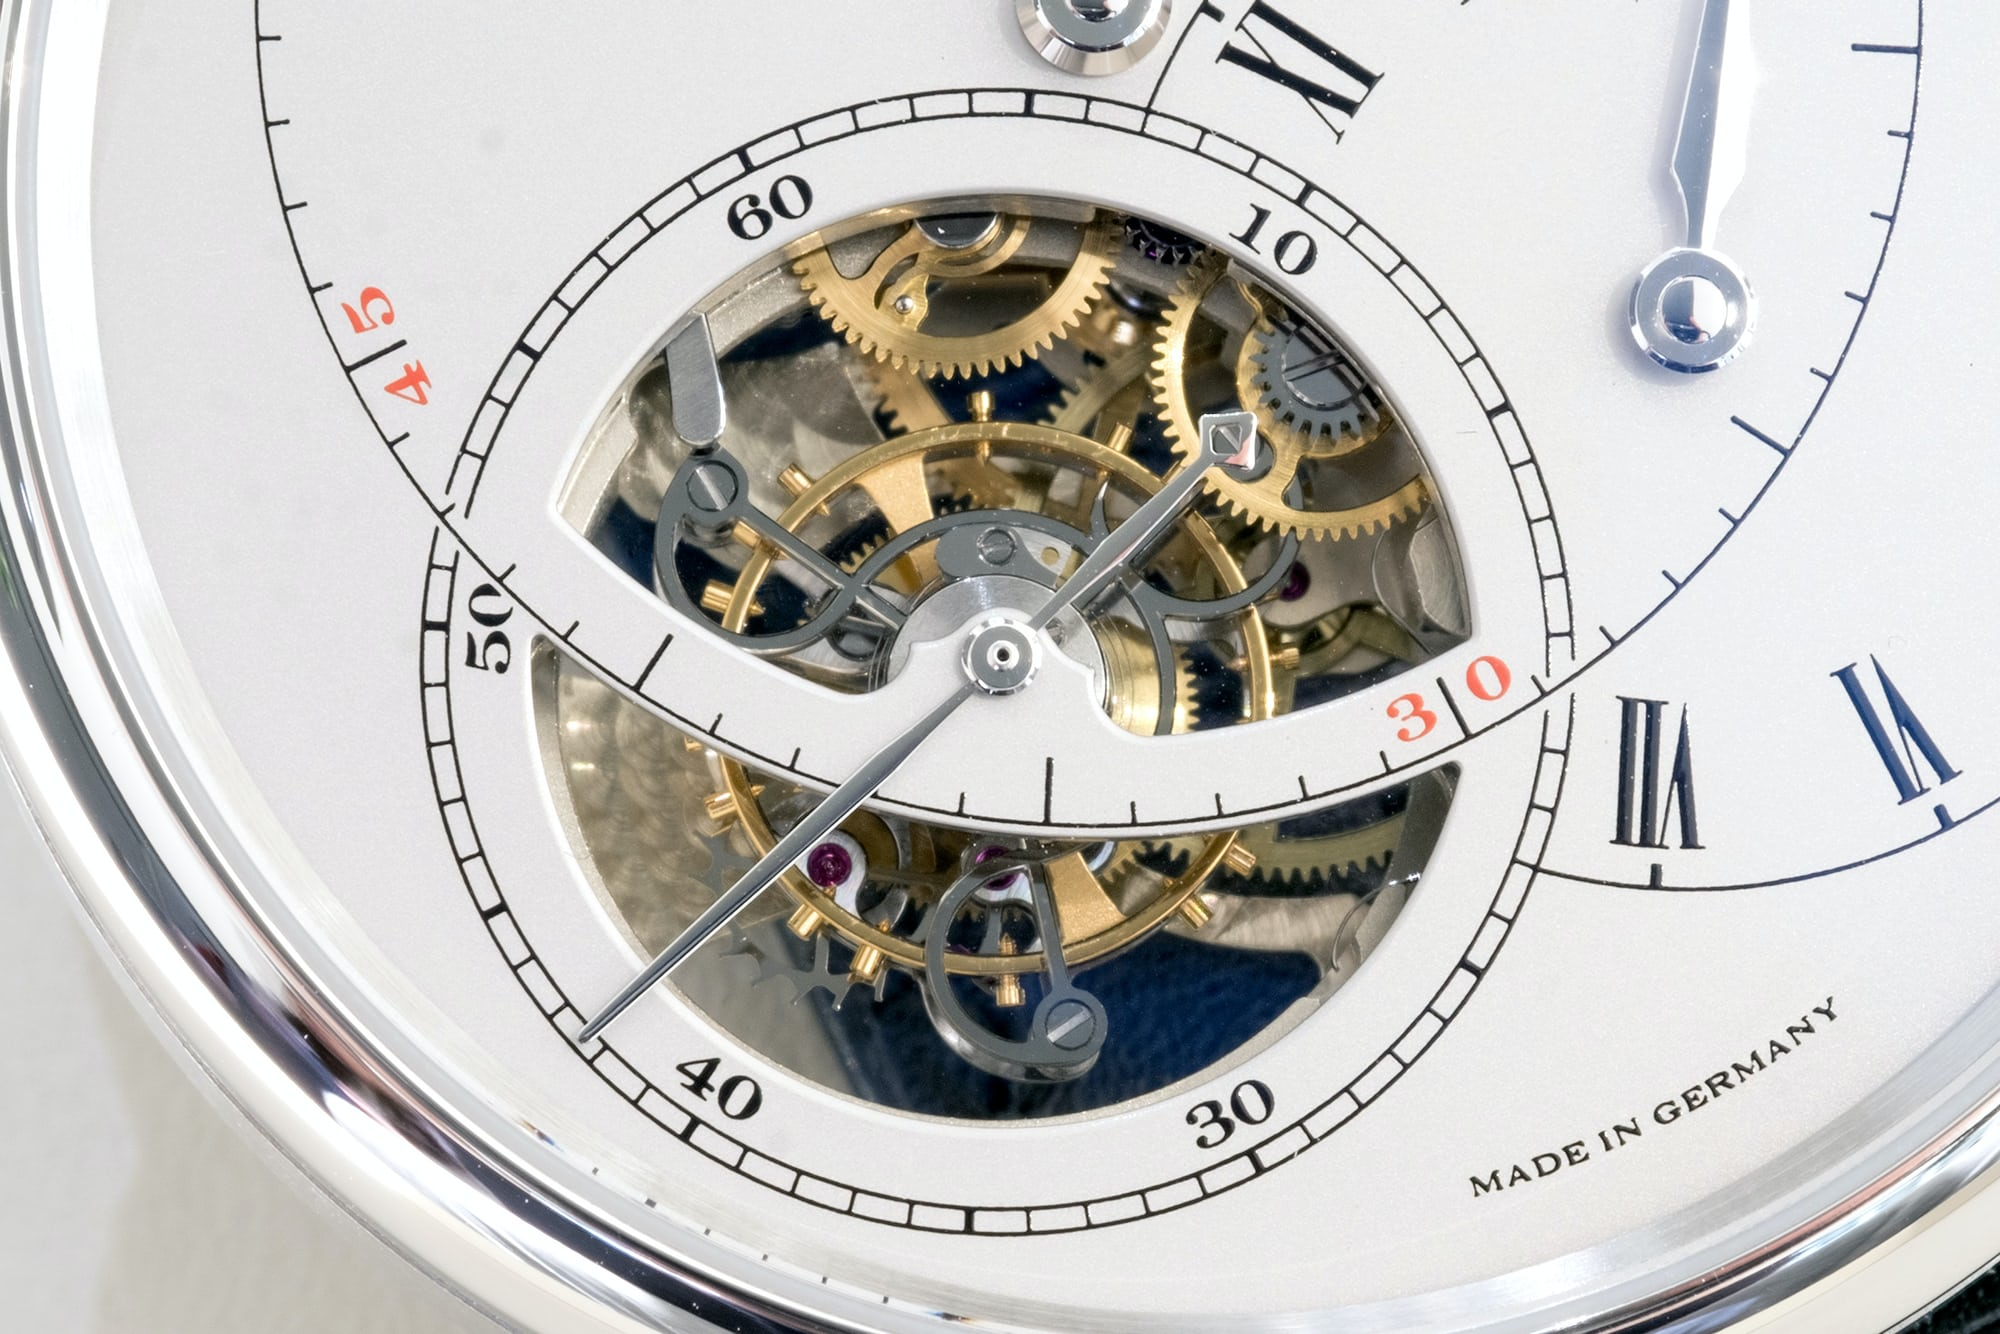 Just Because: All Five A. Lange & Söhne 'Pour le Mérite' Watches In The Same Place, At The Same Time Just Because: All Five A. Lange & Söhne 'Pour le Mérite' Watches In The Same Place, At The Same Time plm 18